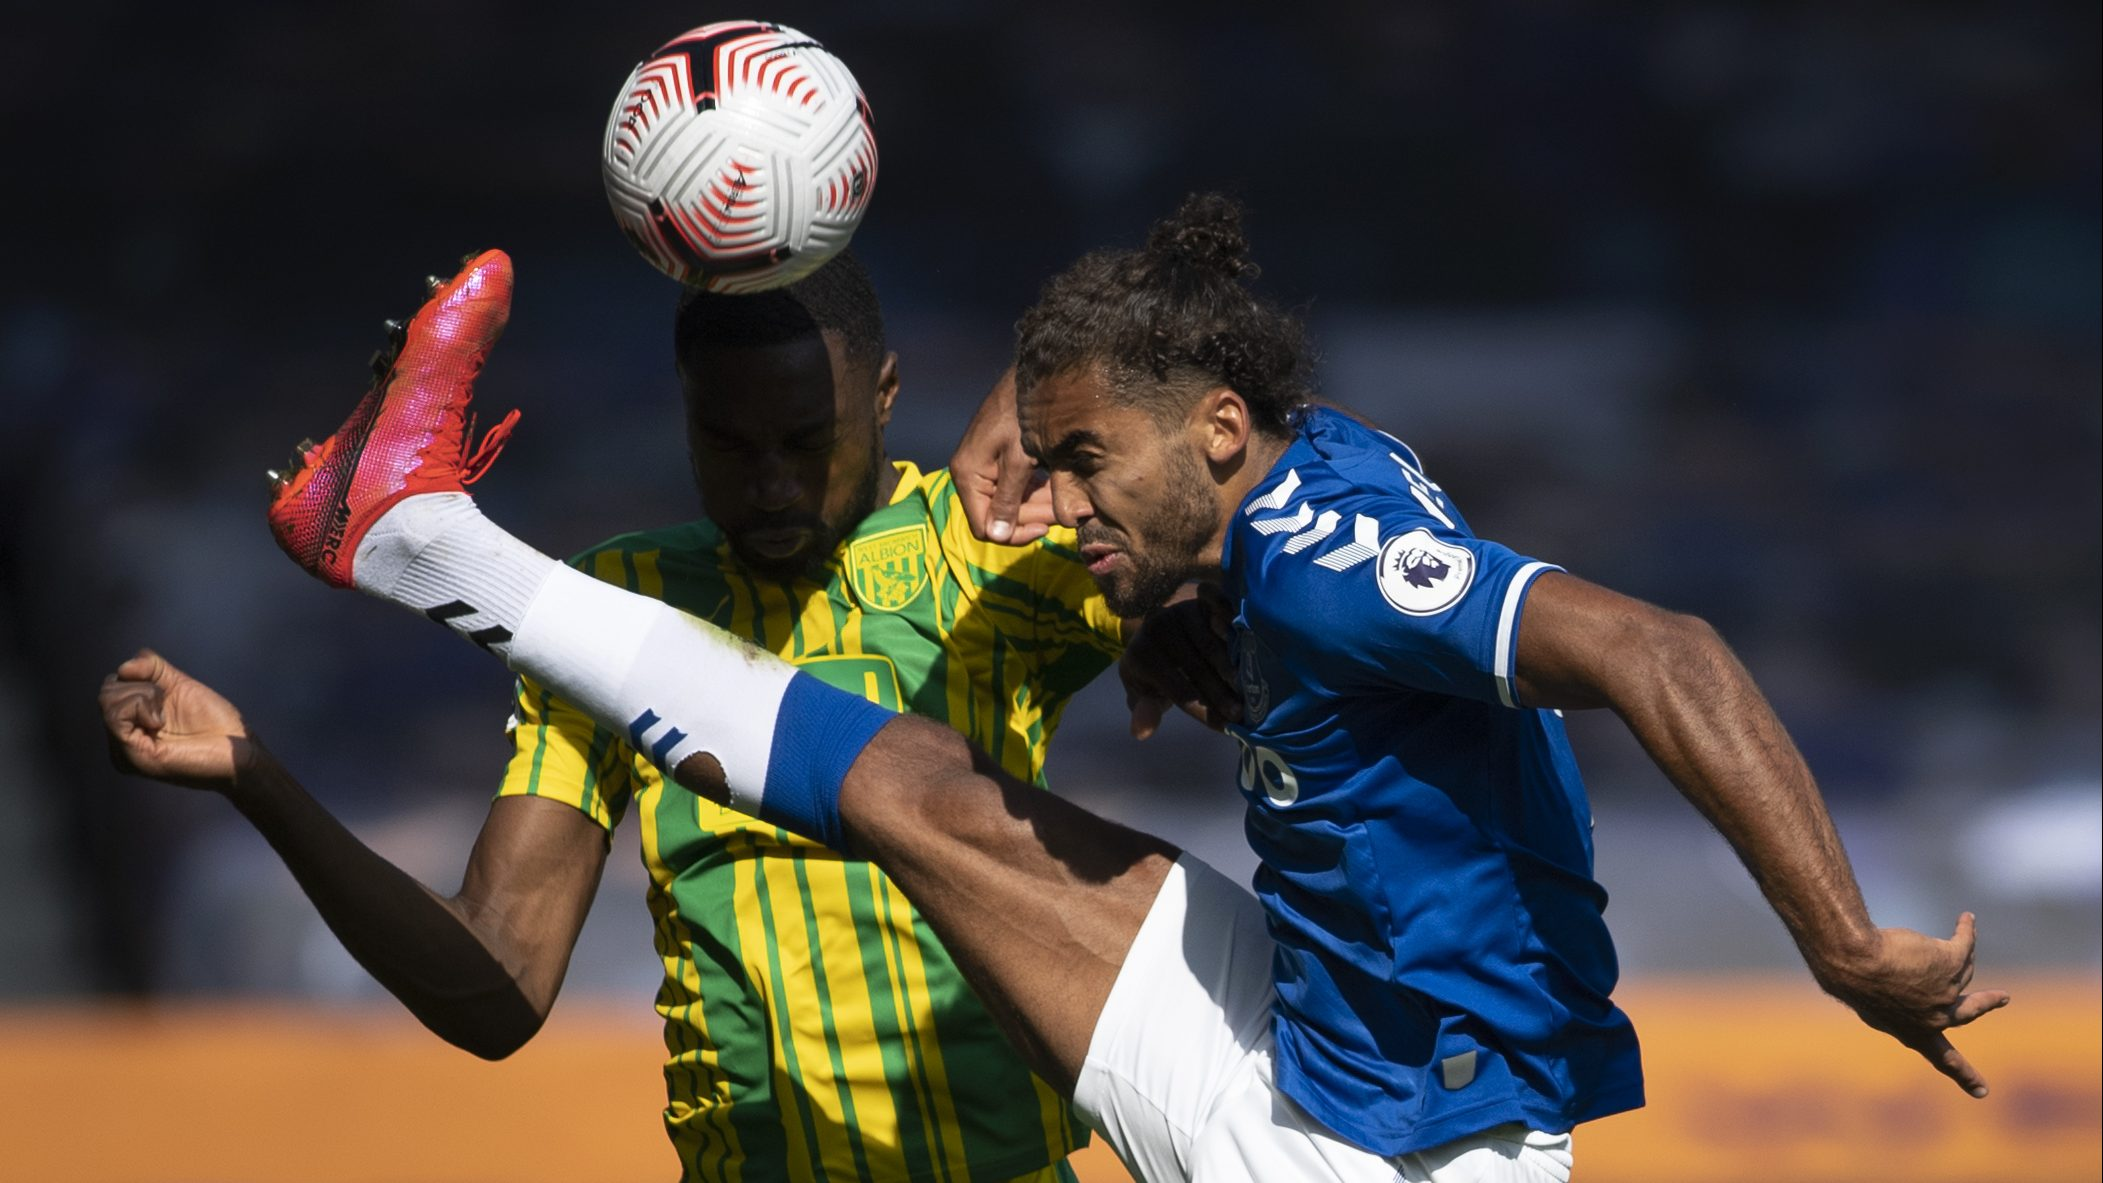 West Brom – Everton, stream live! How to watch, odds, prediction